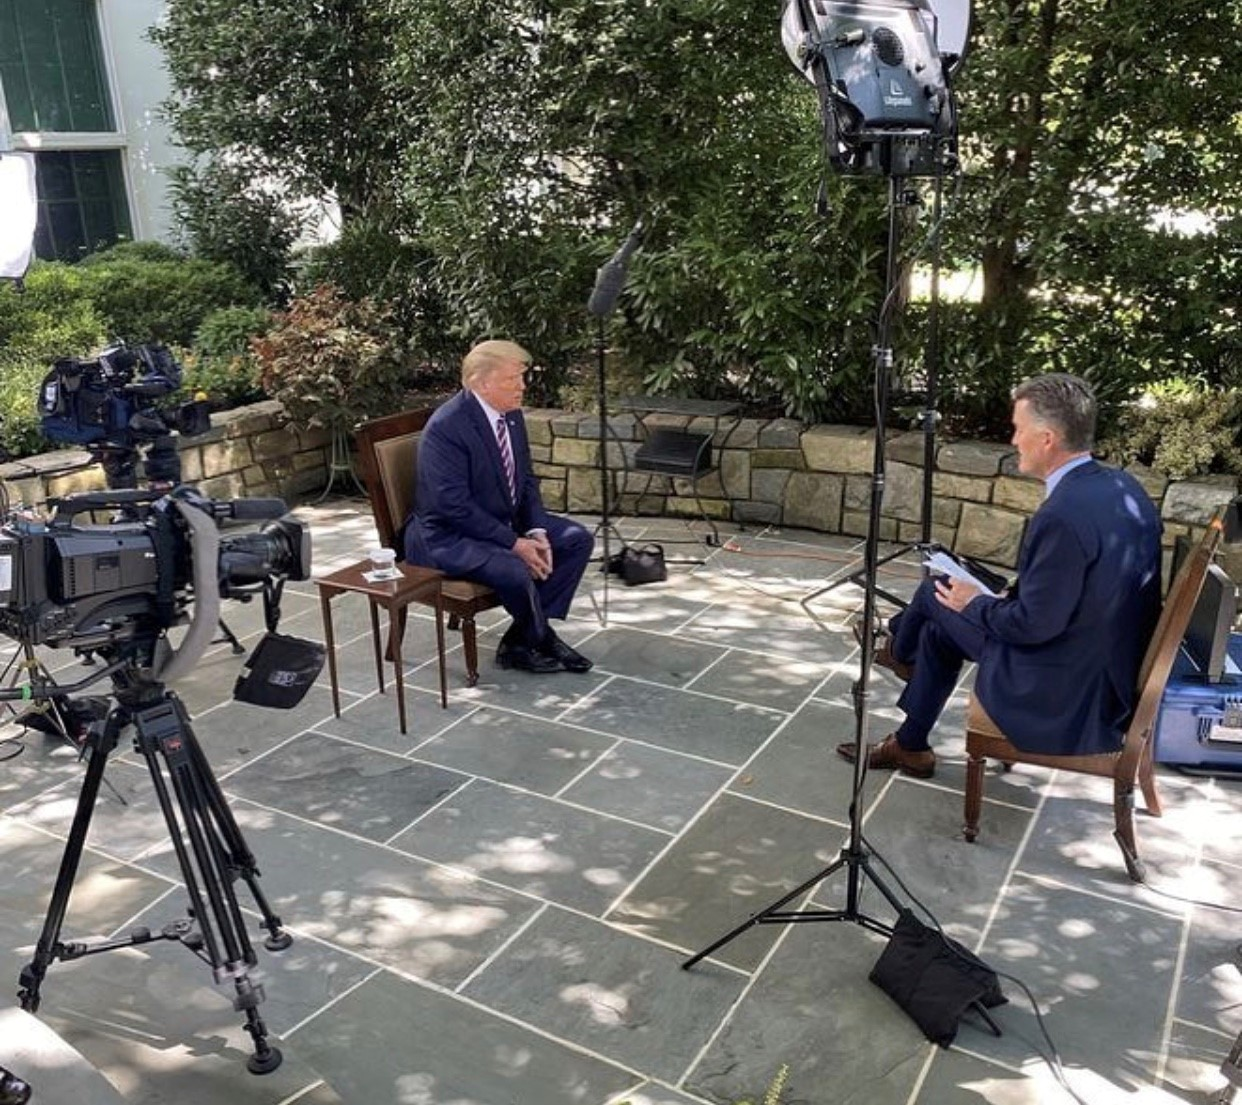 President Trump talks Supreme Court nominee, election, coronavirus and football in NewsNation interview - KXAN.com